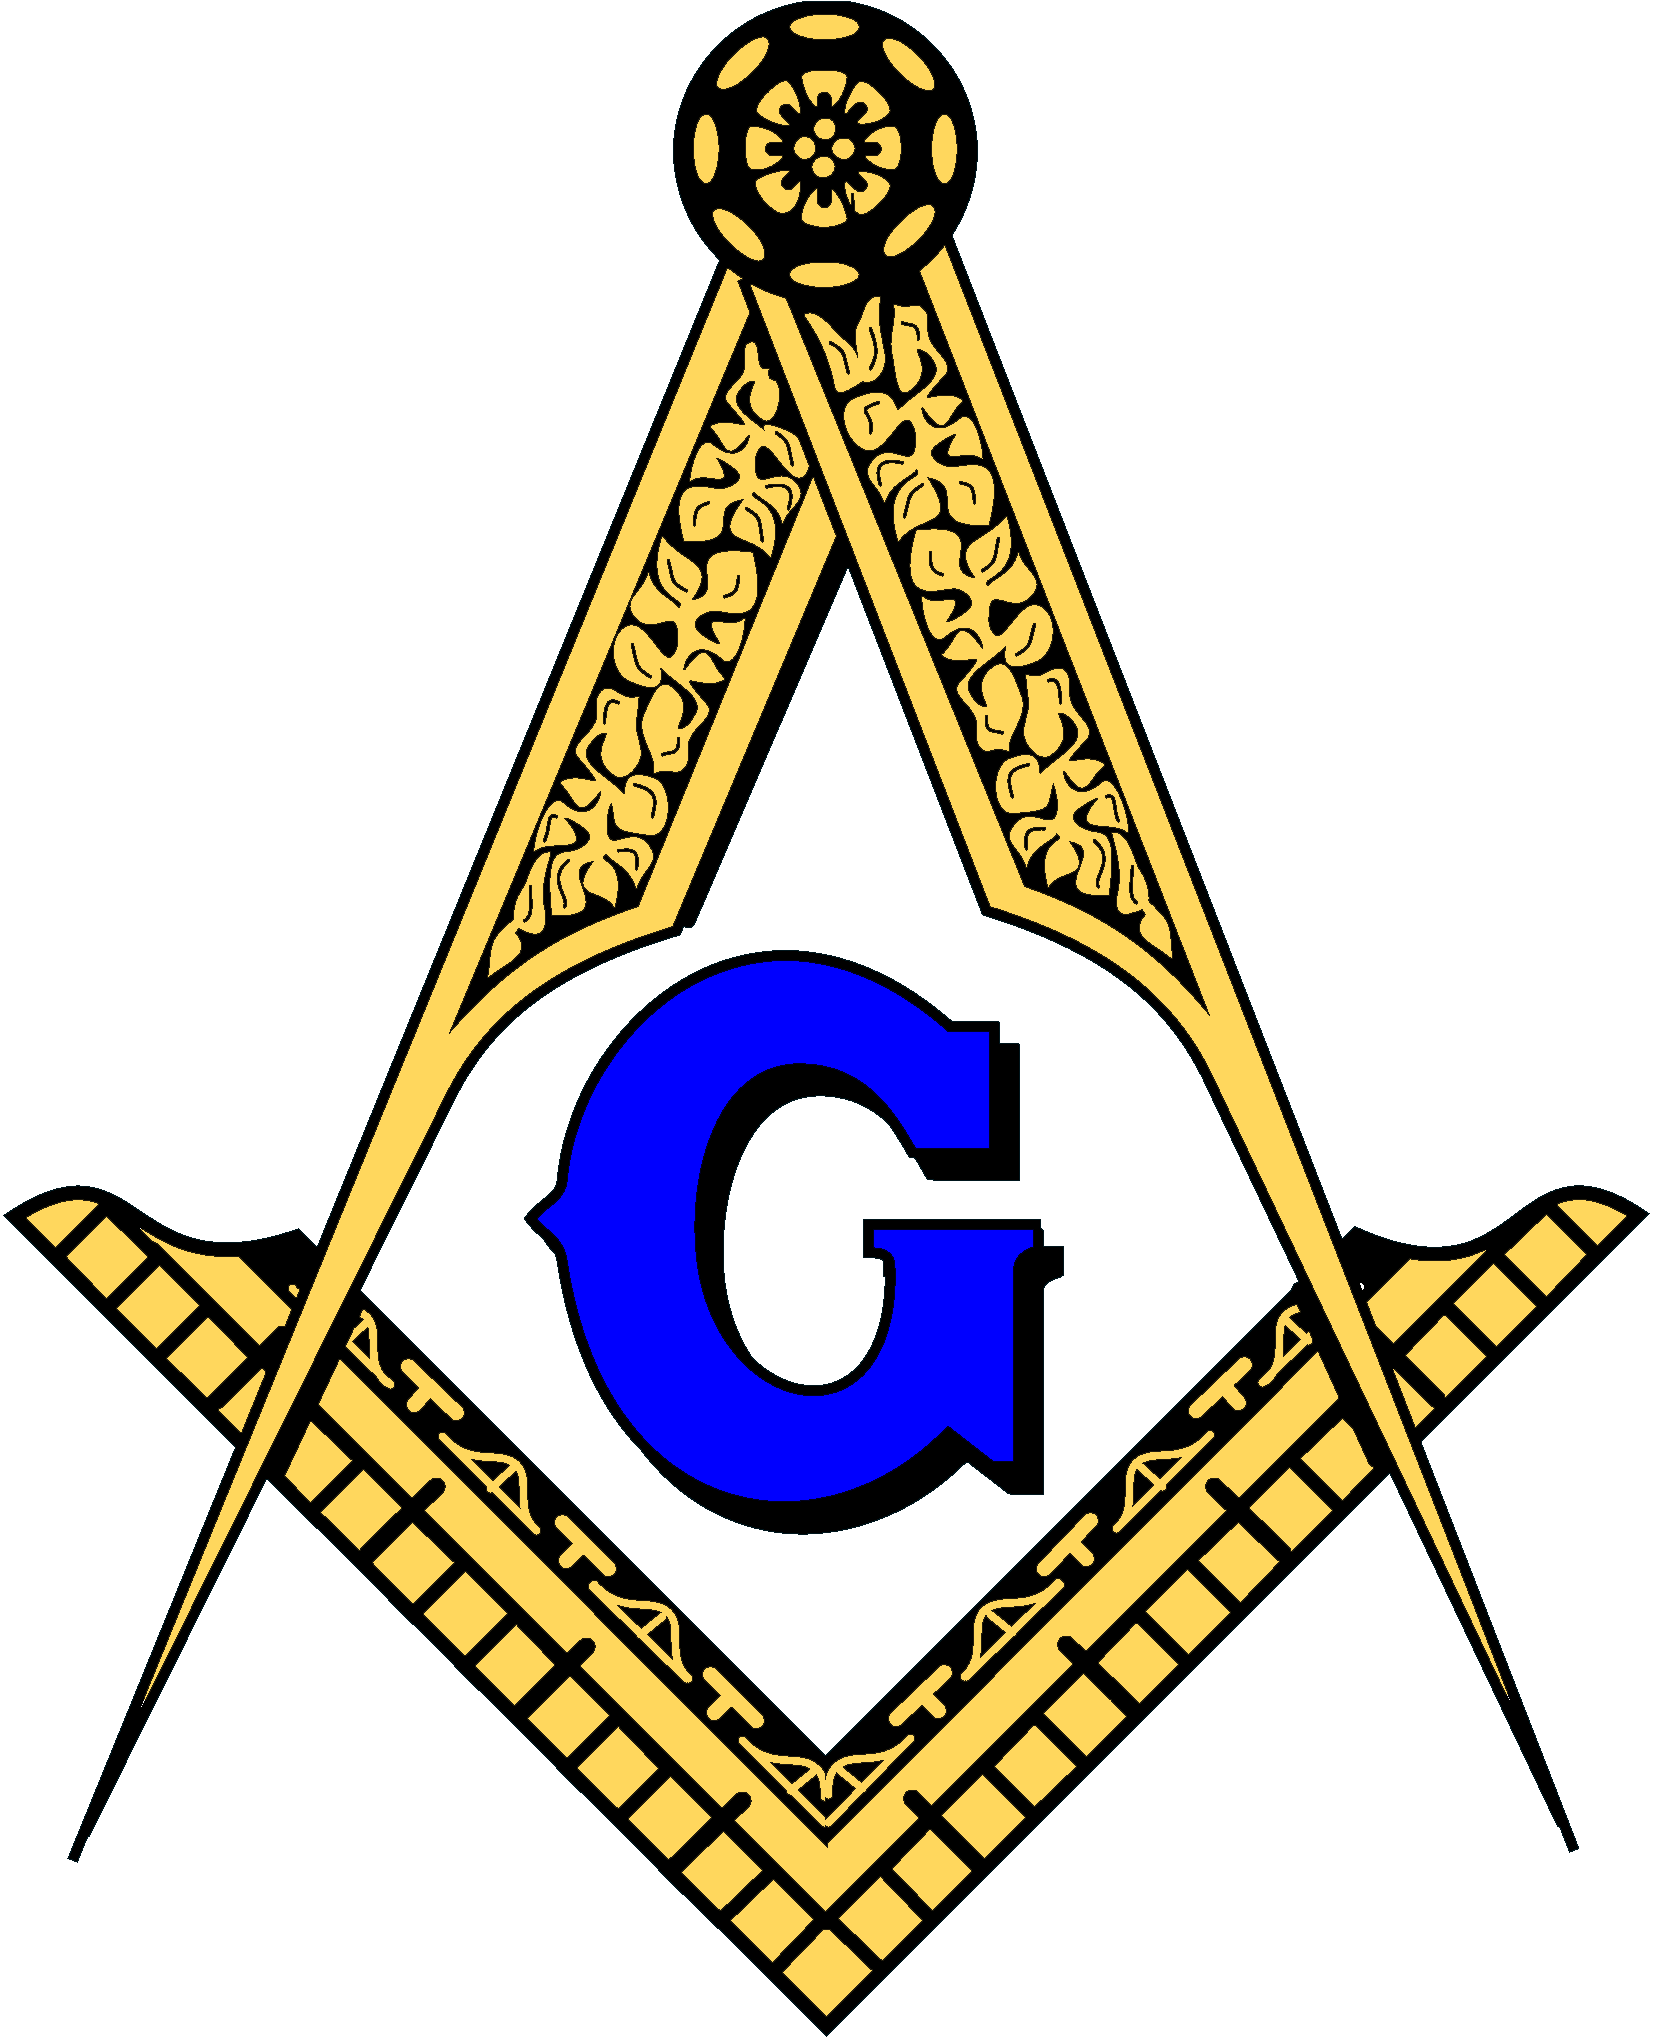 image freeuse download Mason clipart masonic lodge. Business spotlight link lee.